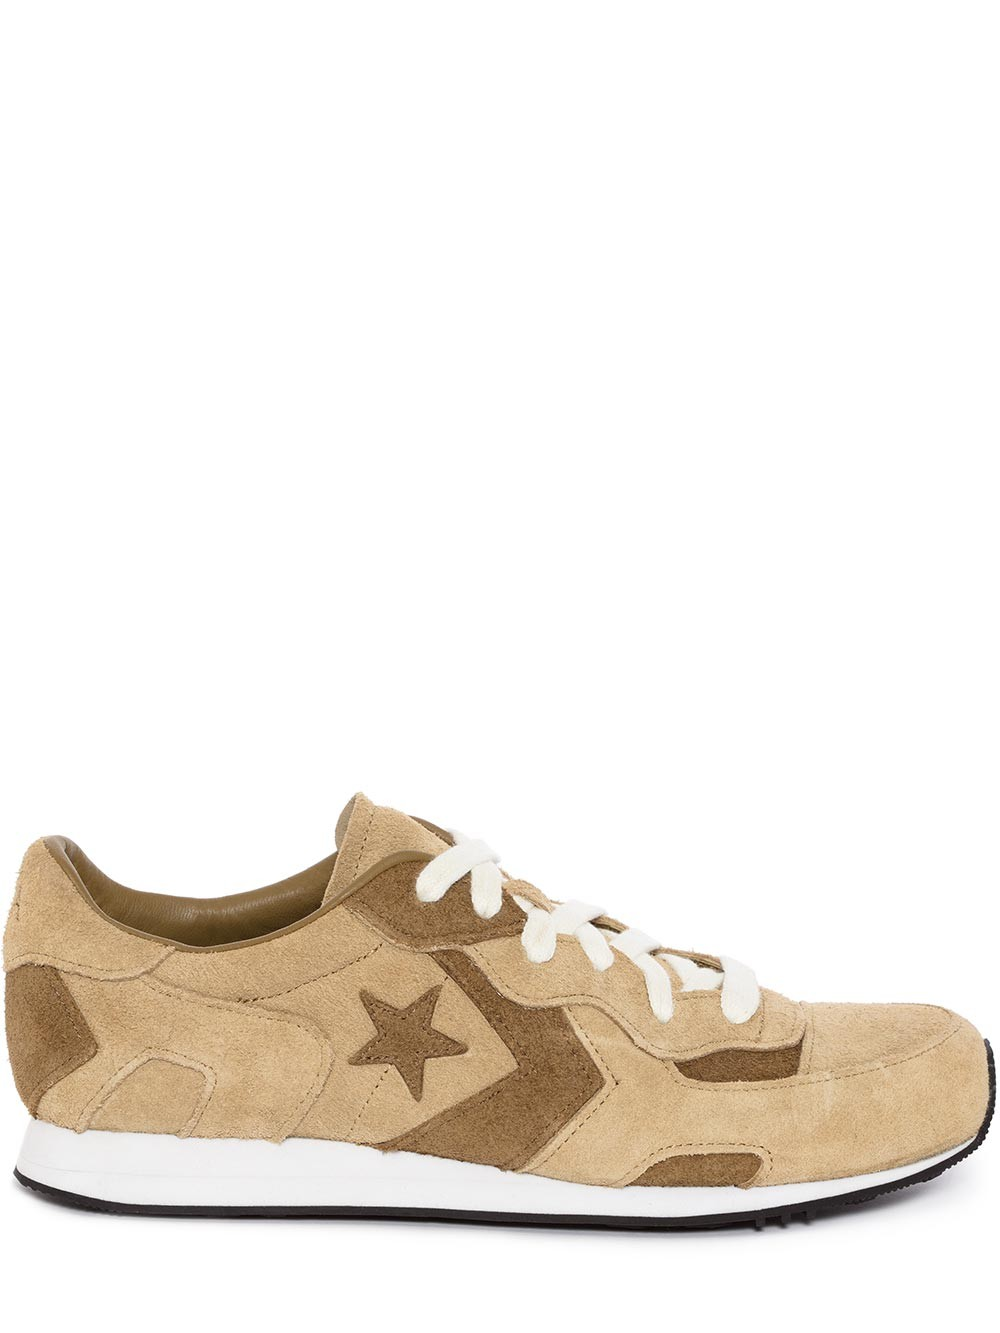 Converse x JW Anderson sneakers - £130 - Because all of the glittery ones have sold out (sad face)